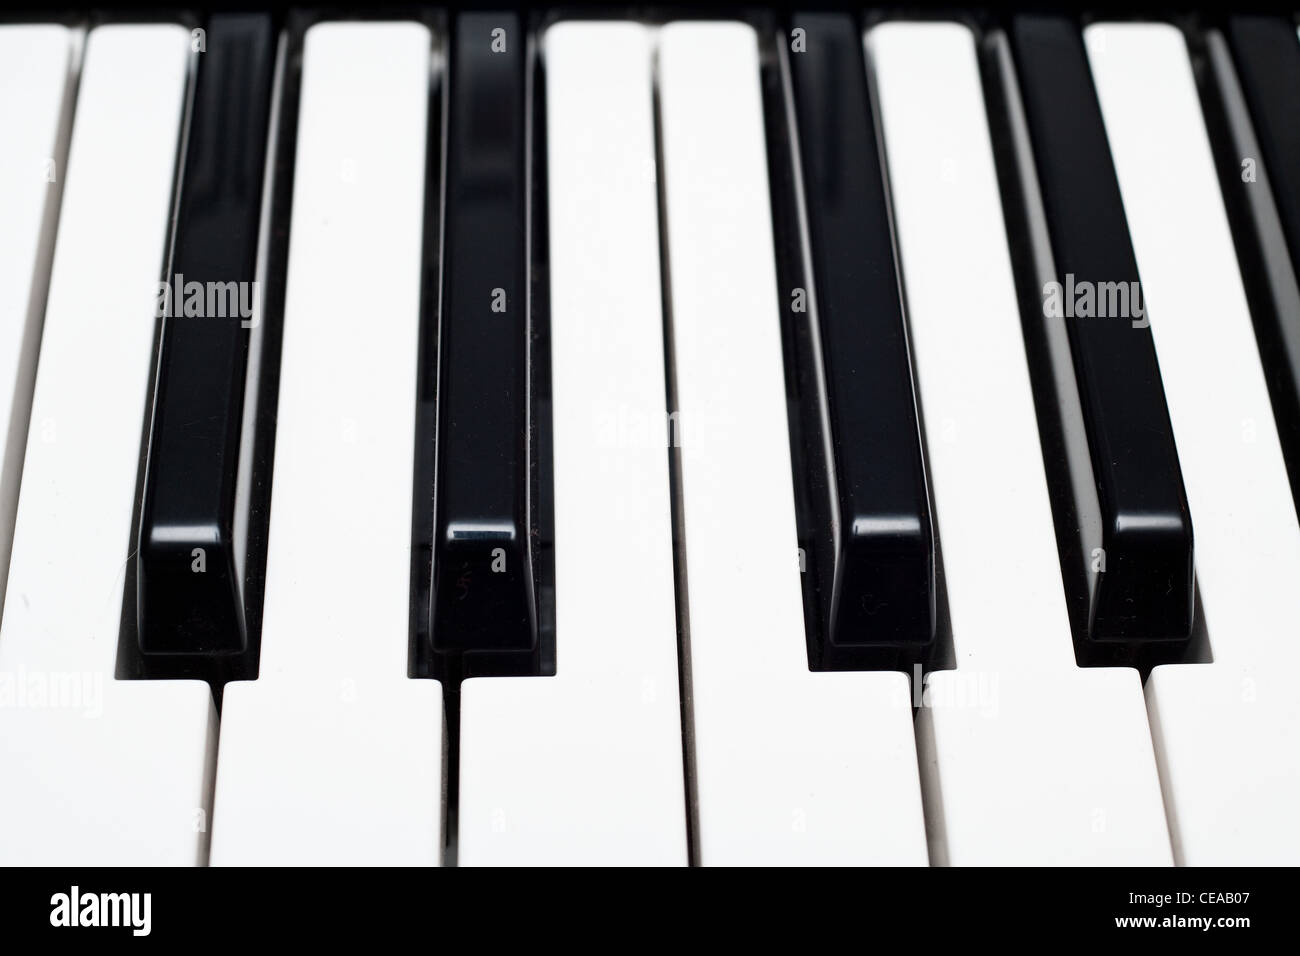 A Yamaha Keyboard - Stock Image